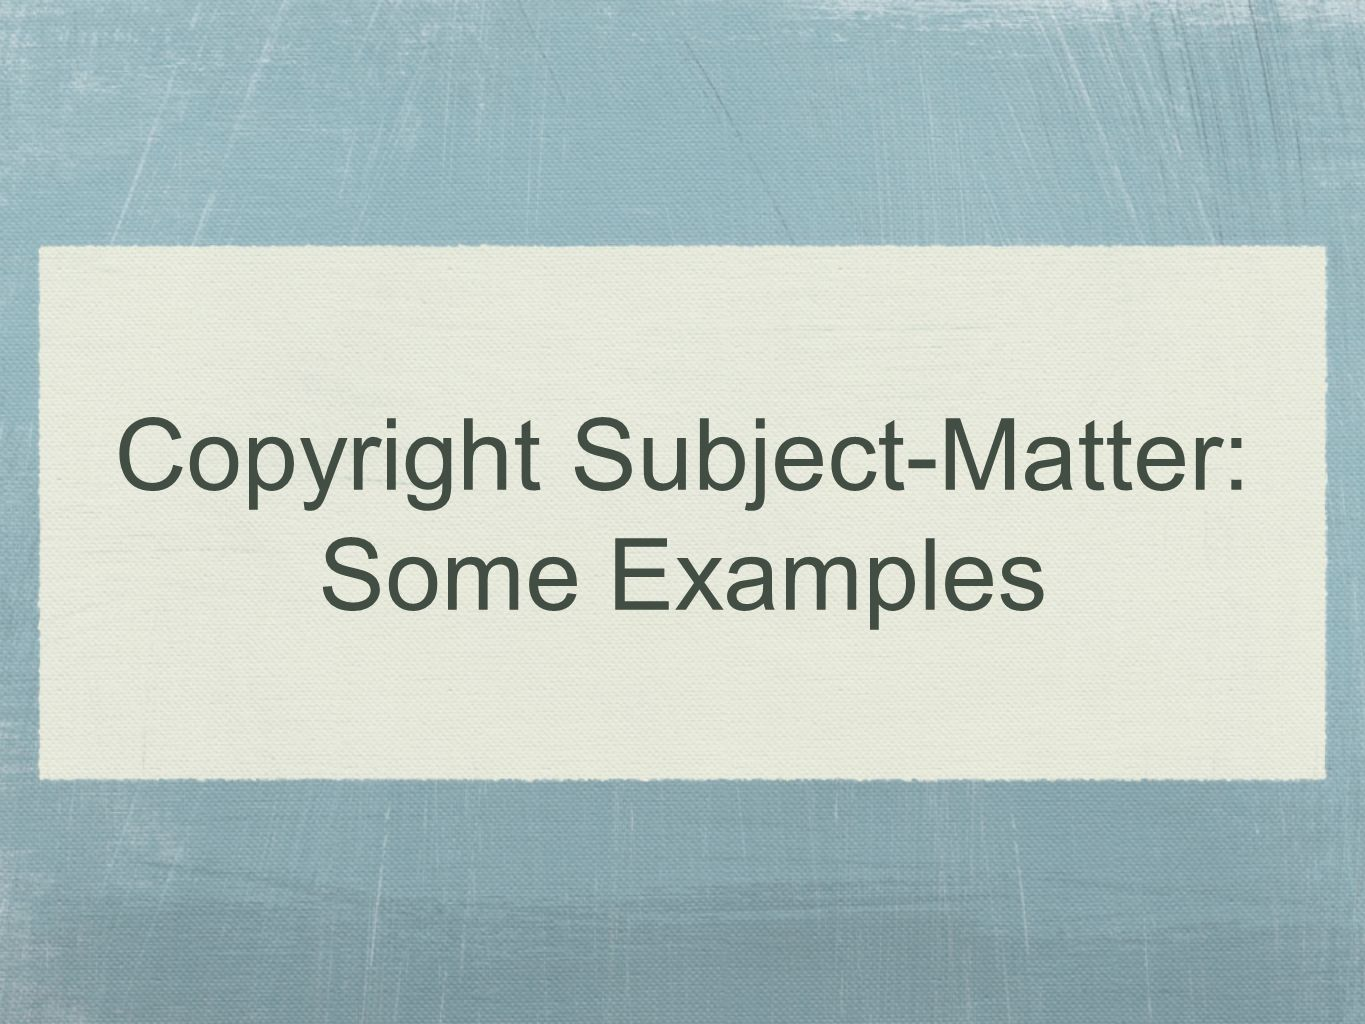 Copyright Subject-Matter: Some Examples